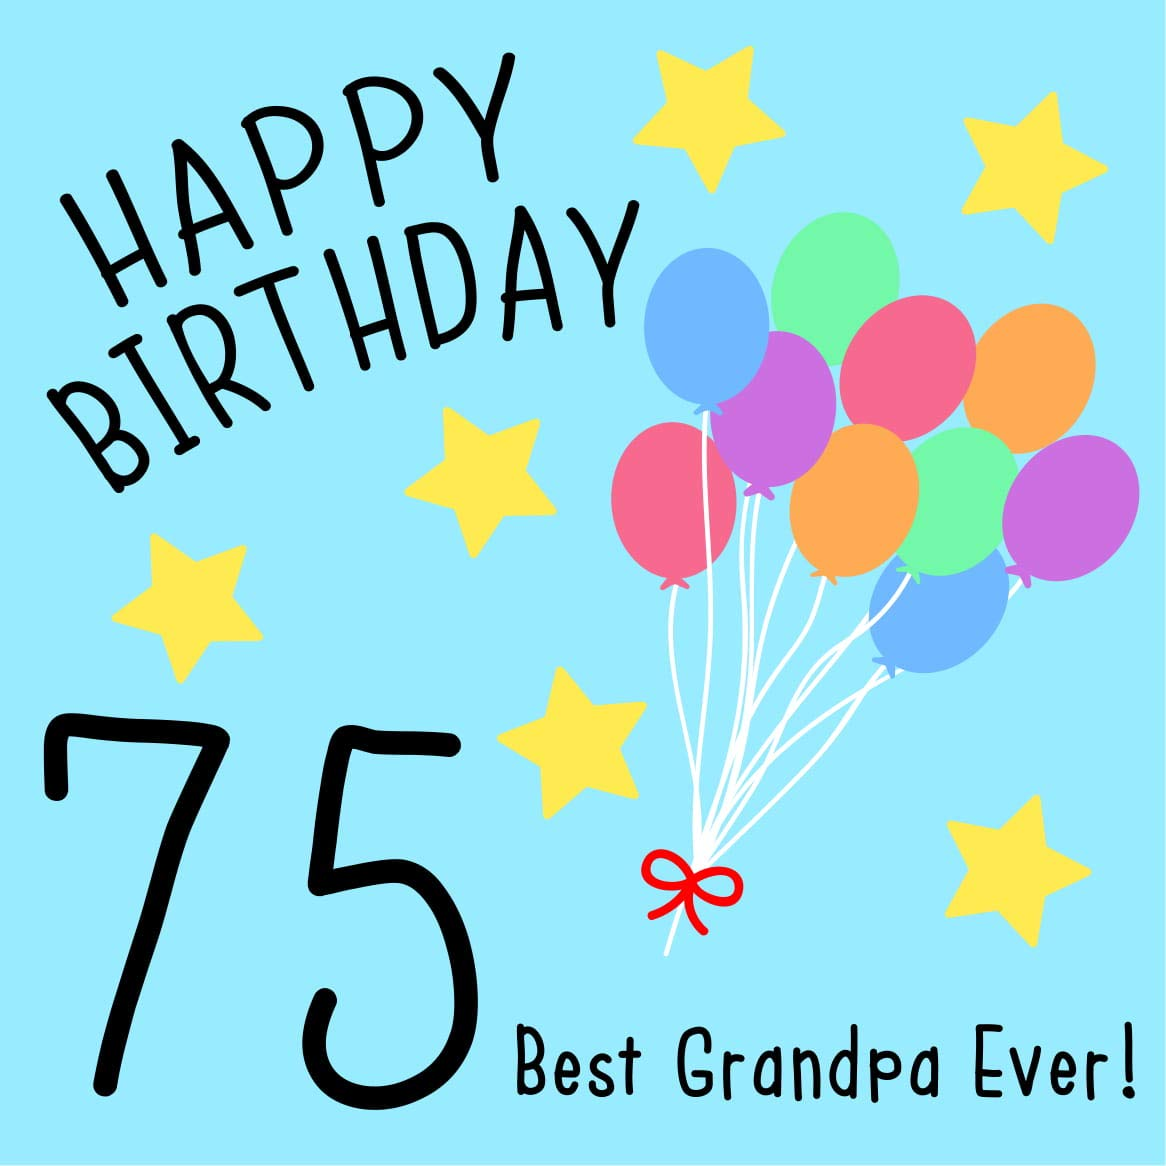 Grandpa Birthday Card Best Ever Office Products Happy Clipart Funny Jpg 1166x1166